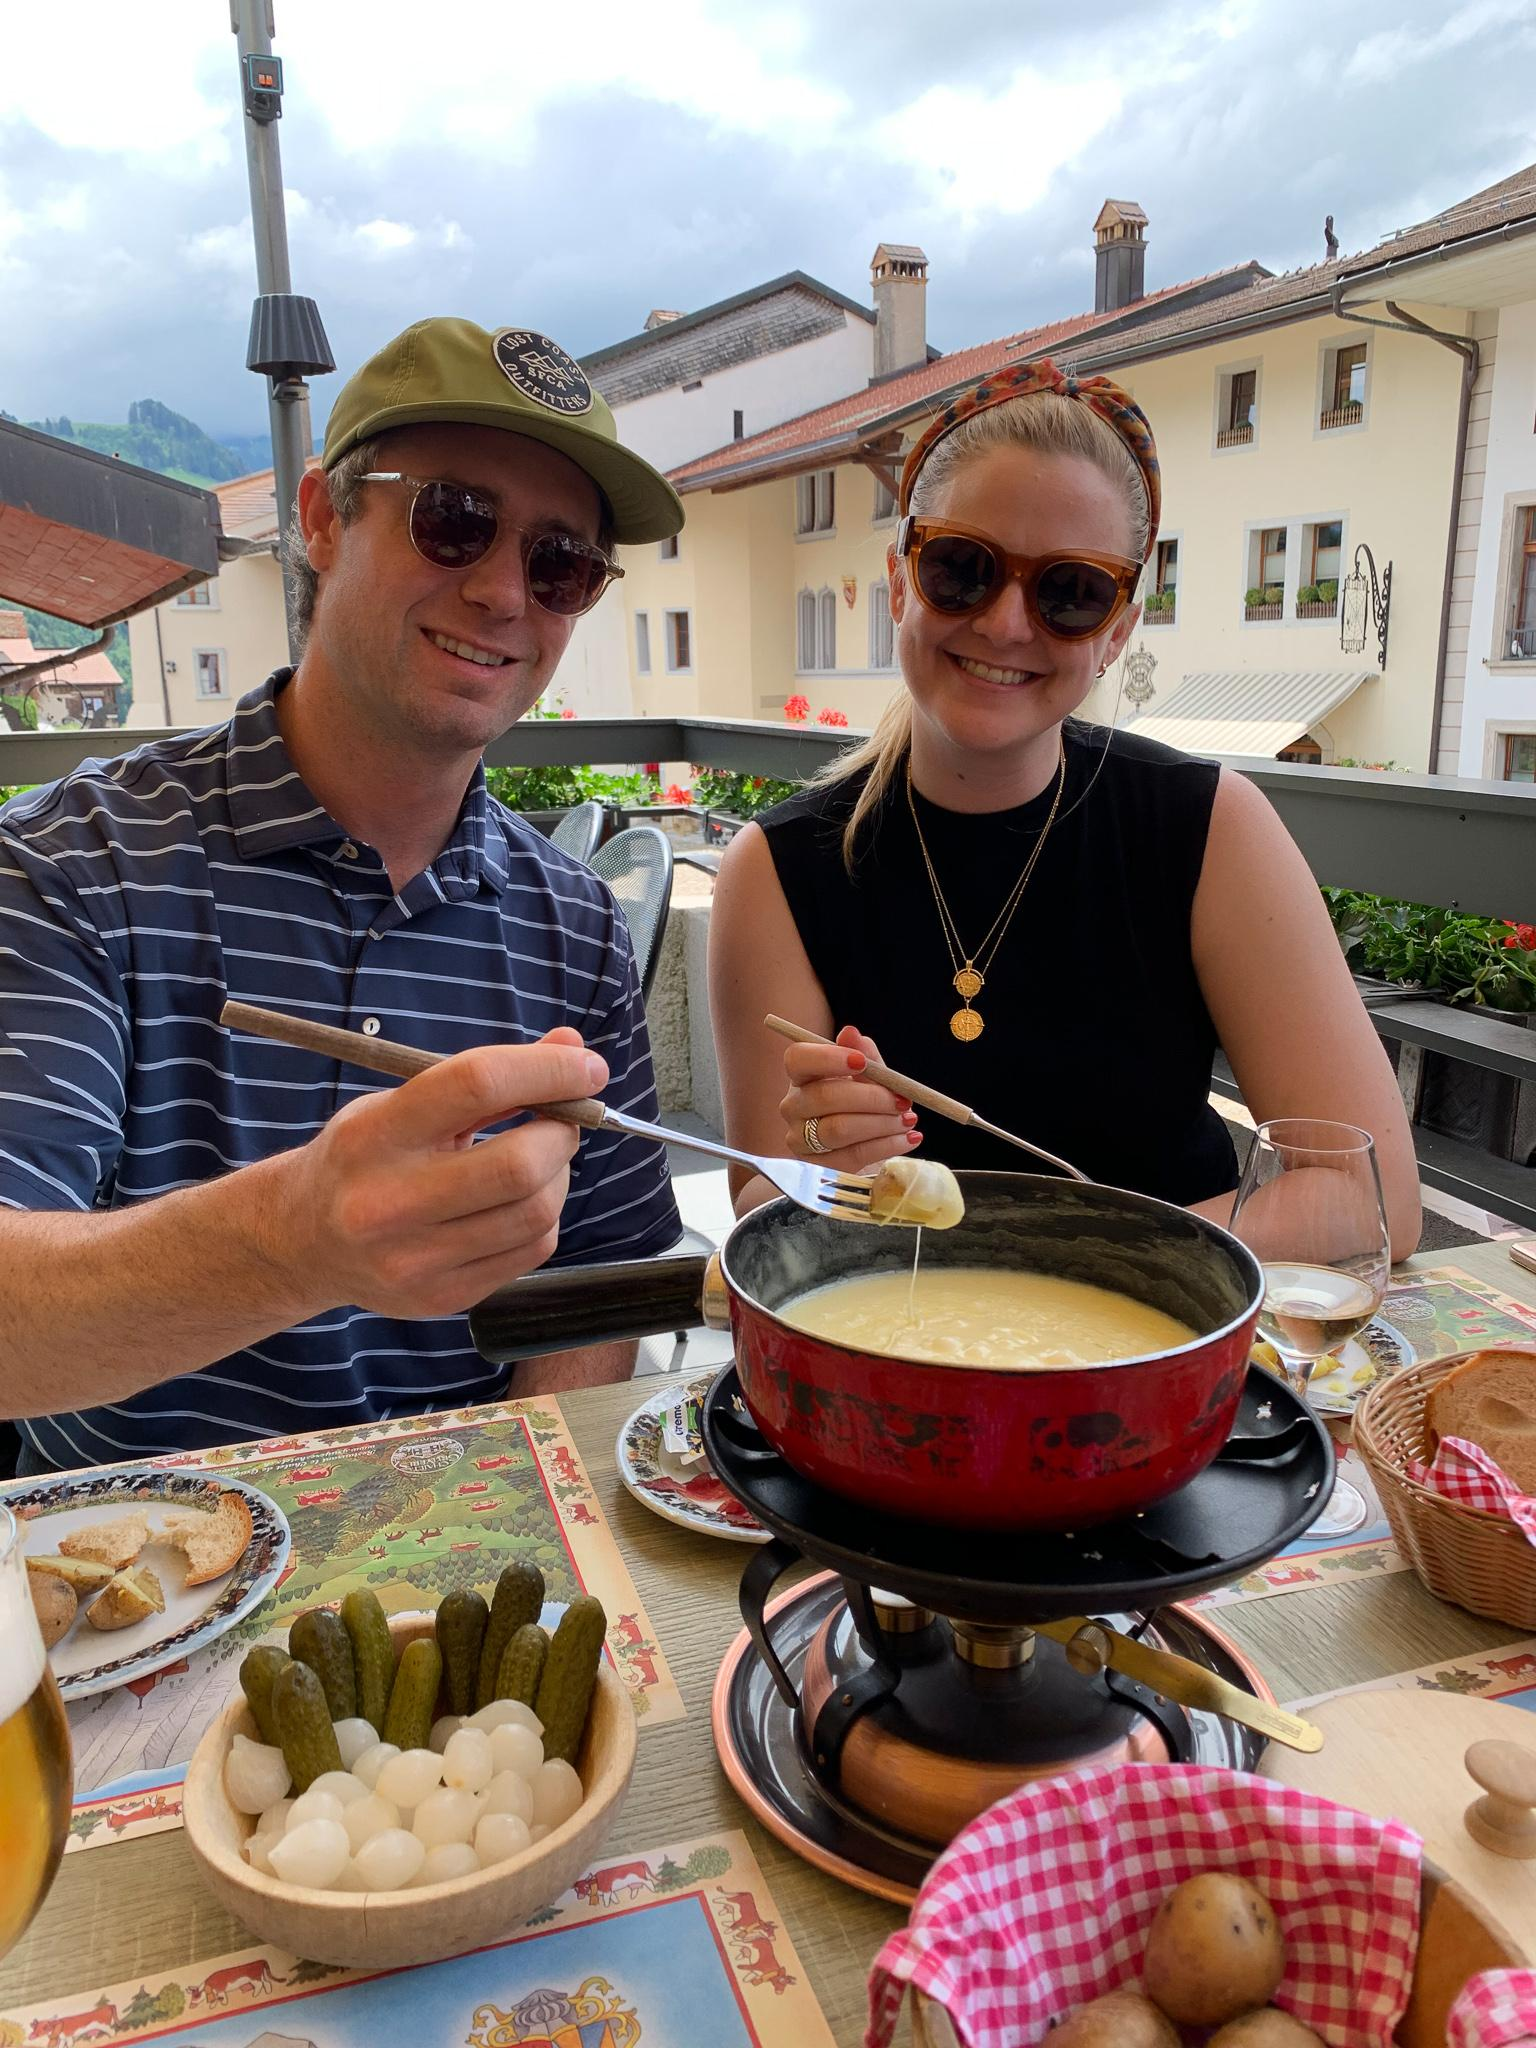 Eating fondu in Gruyere, Switzerland in June 2019.